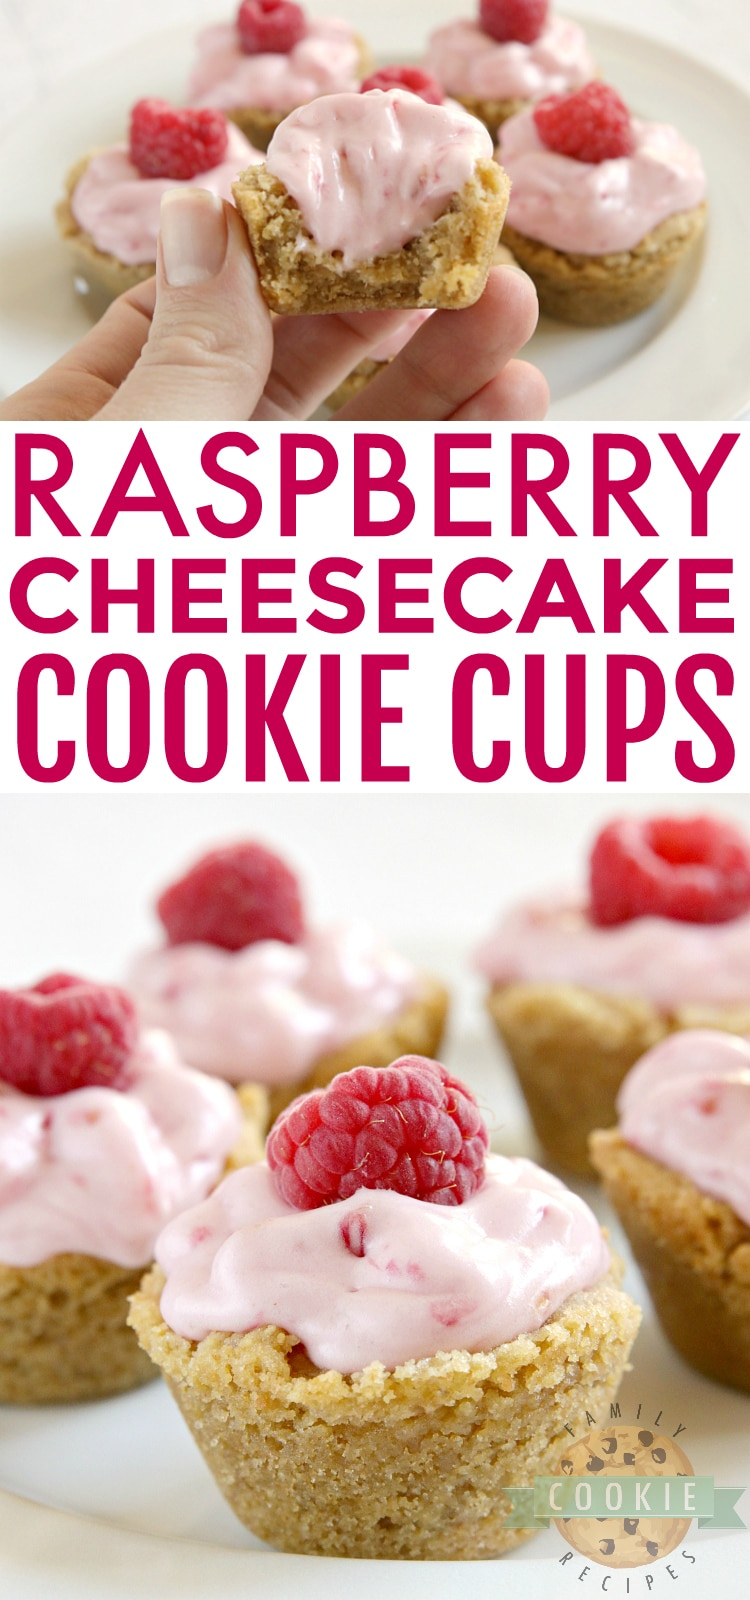 Raspberry Cheesecake Cookie Cups have a raspberry cheesecake filling in a bite-sized graham cracker cookie crust. These delicious cookie cups taste just like raspberry cheesecake and only take a few minutes to make! via @buttergirls